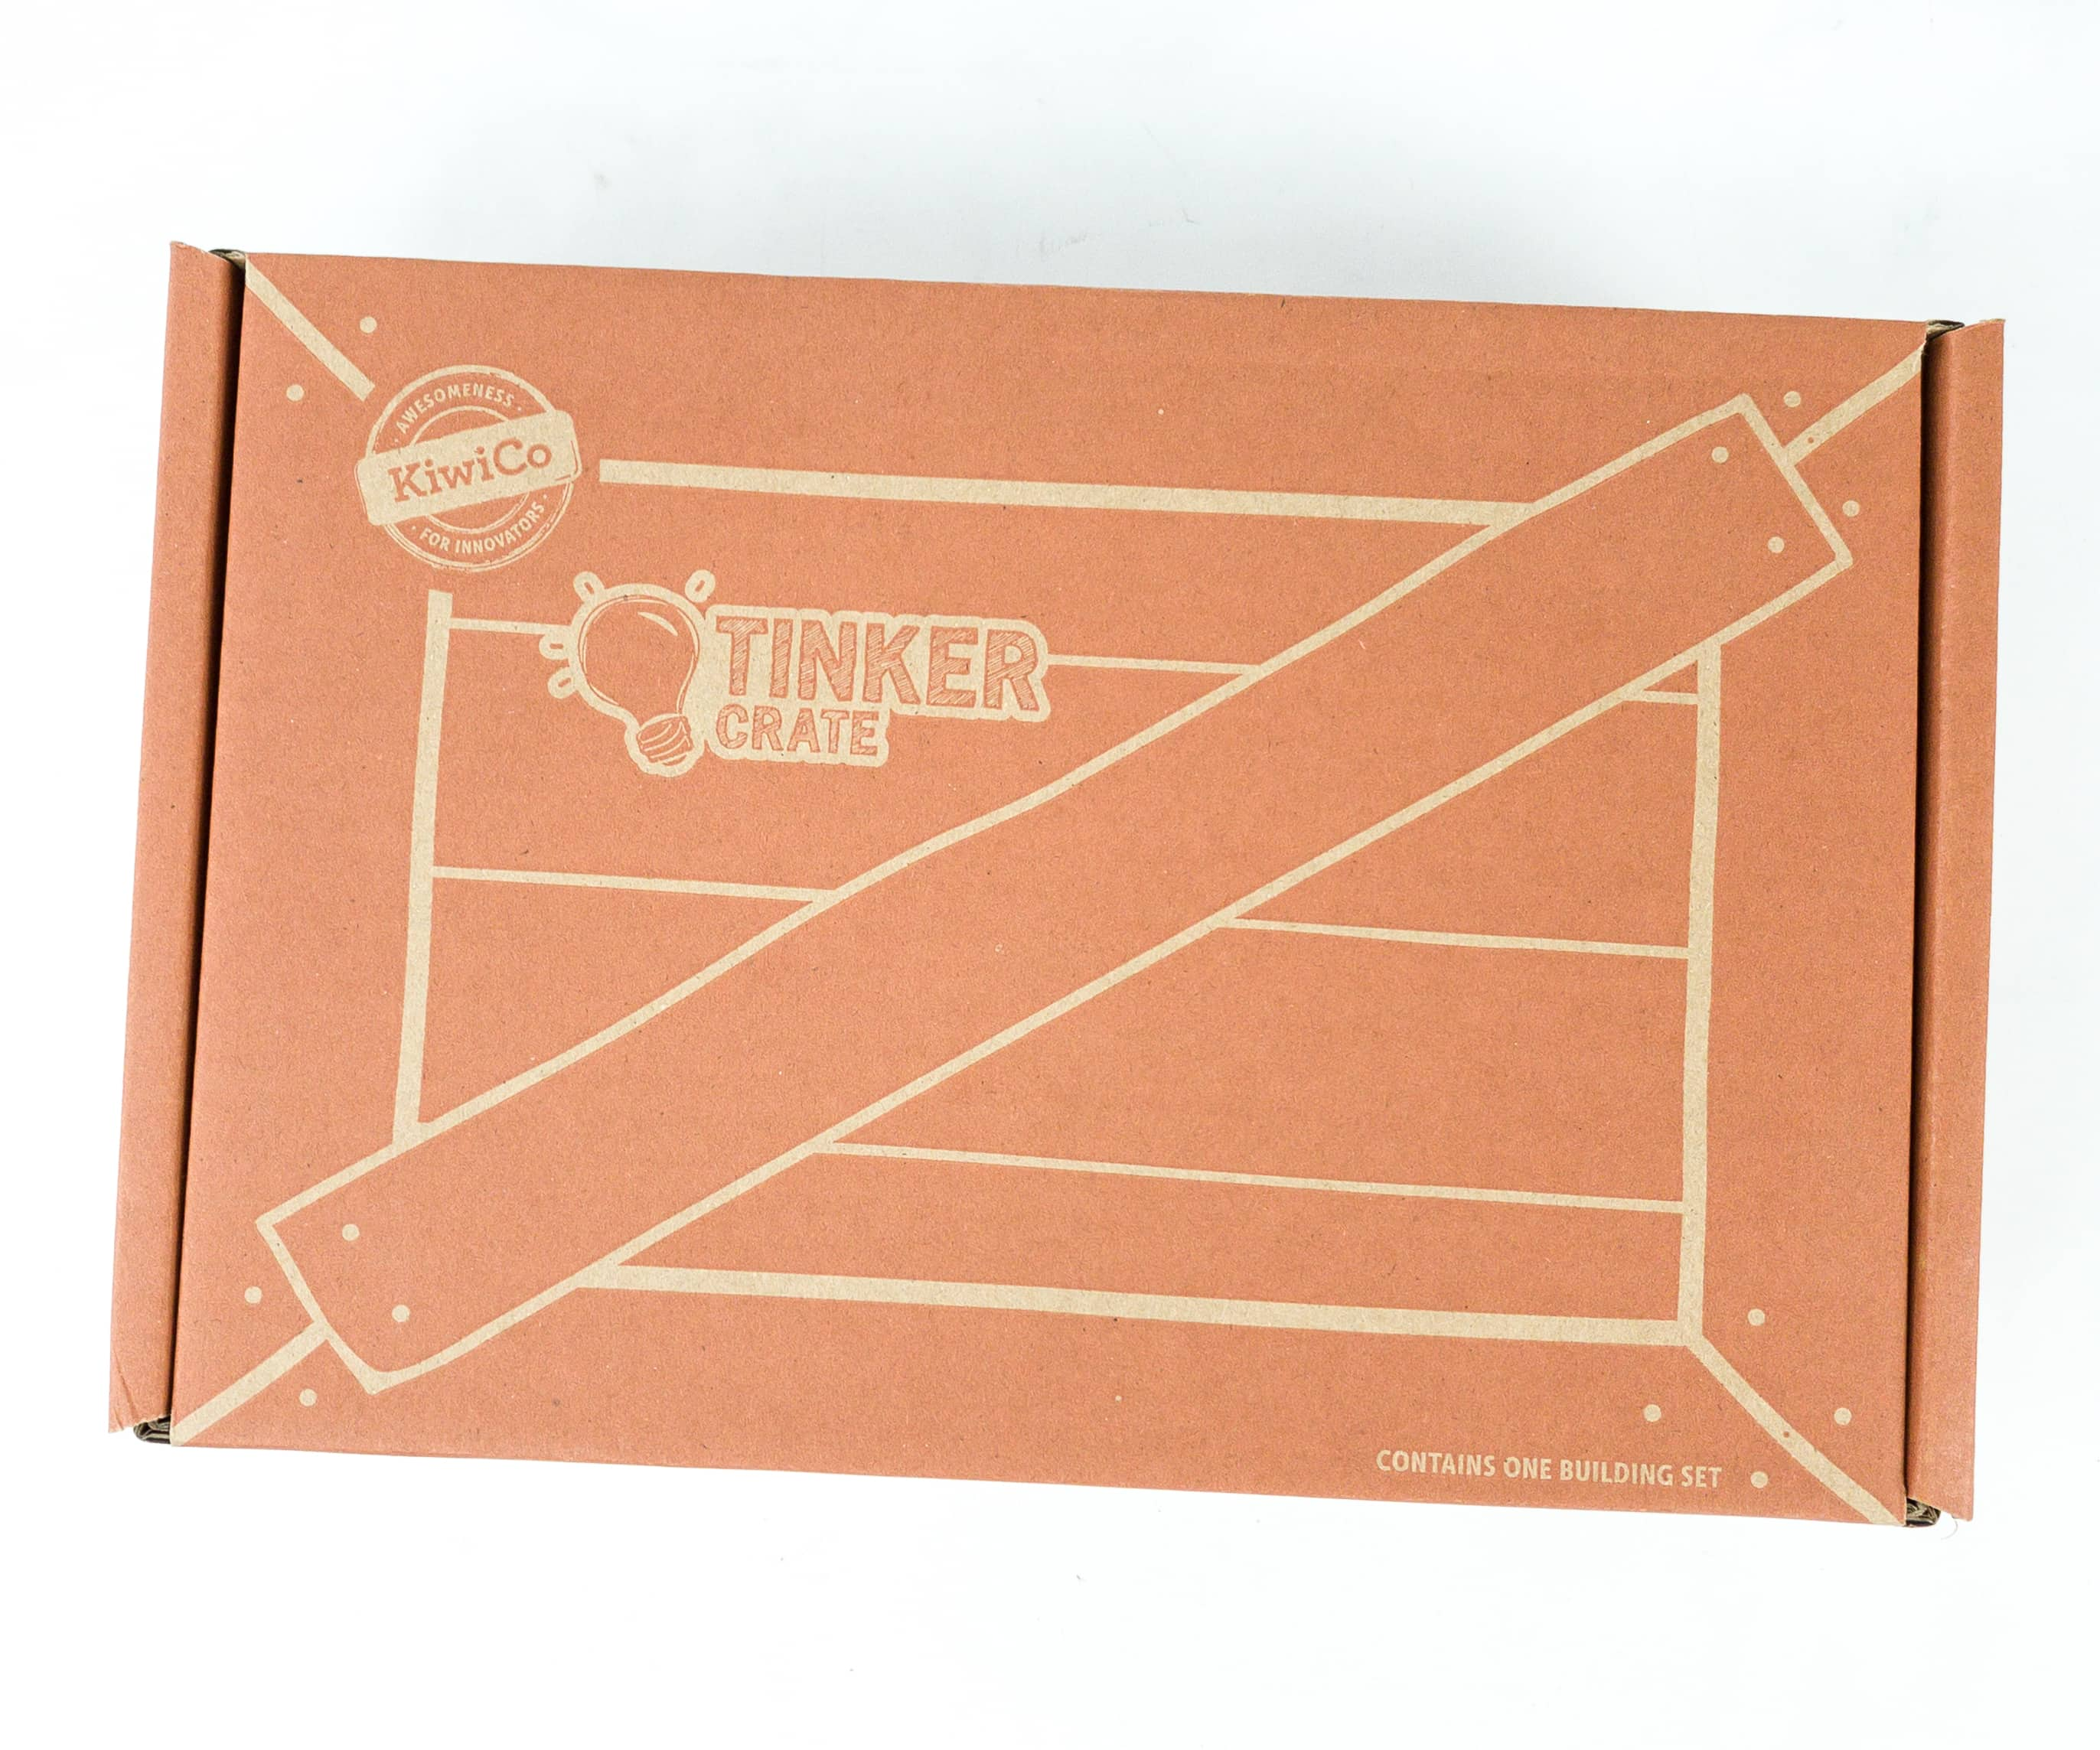 KiwiCo Tinker Crate Review & Coupon – WALKING ROBOT